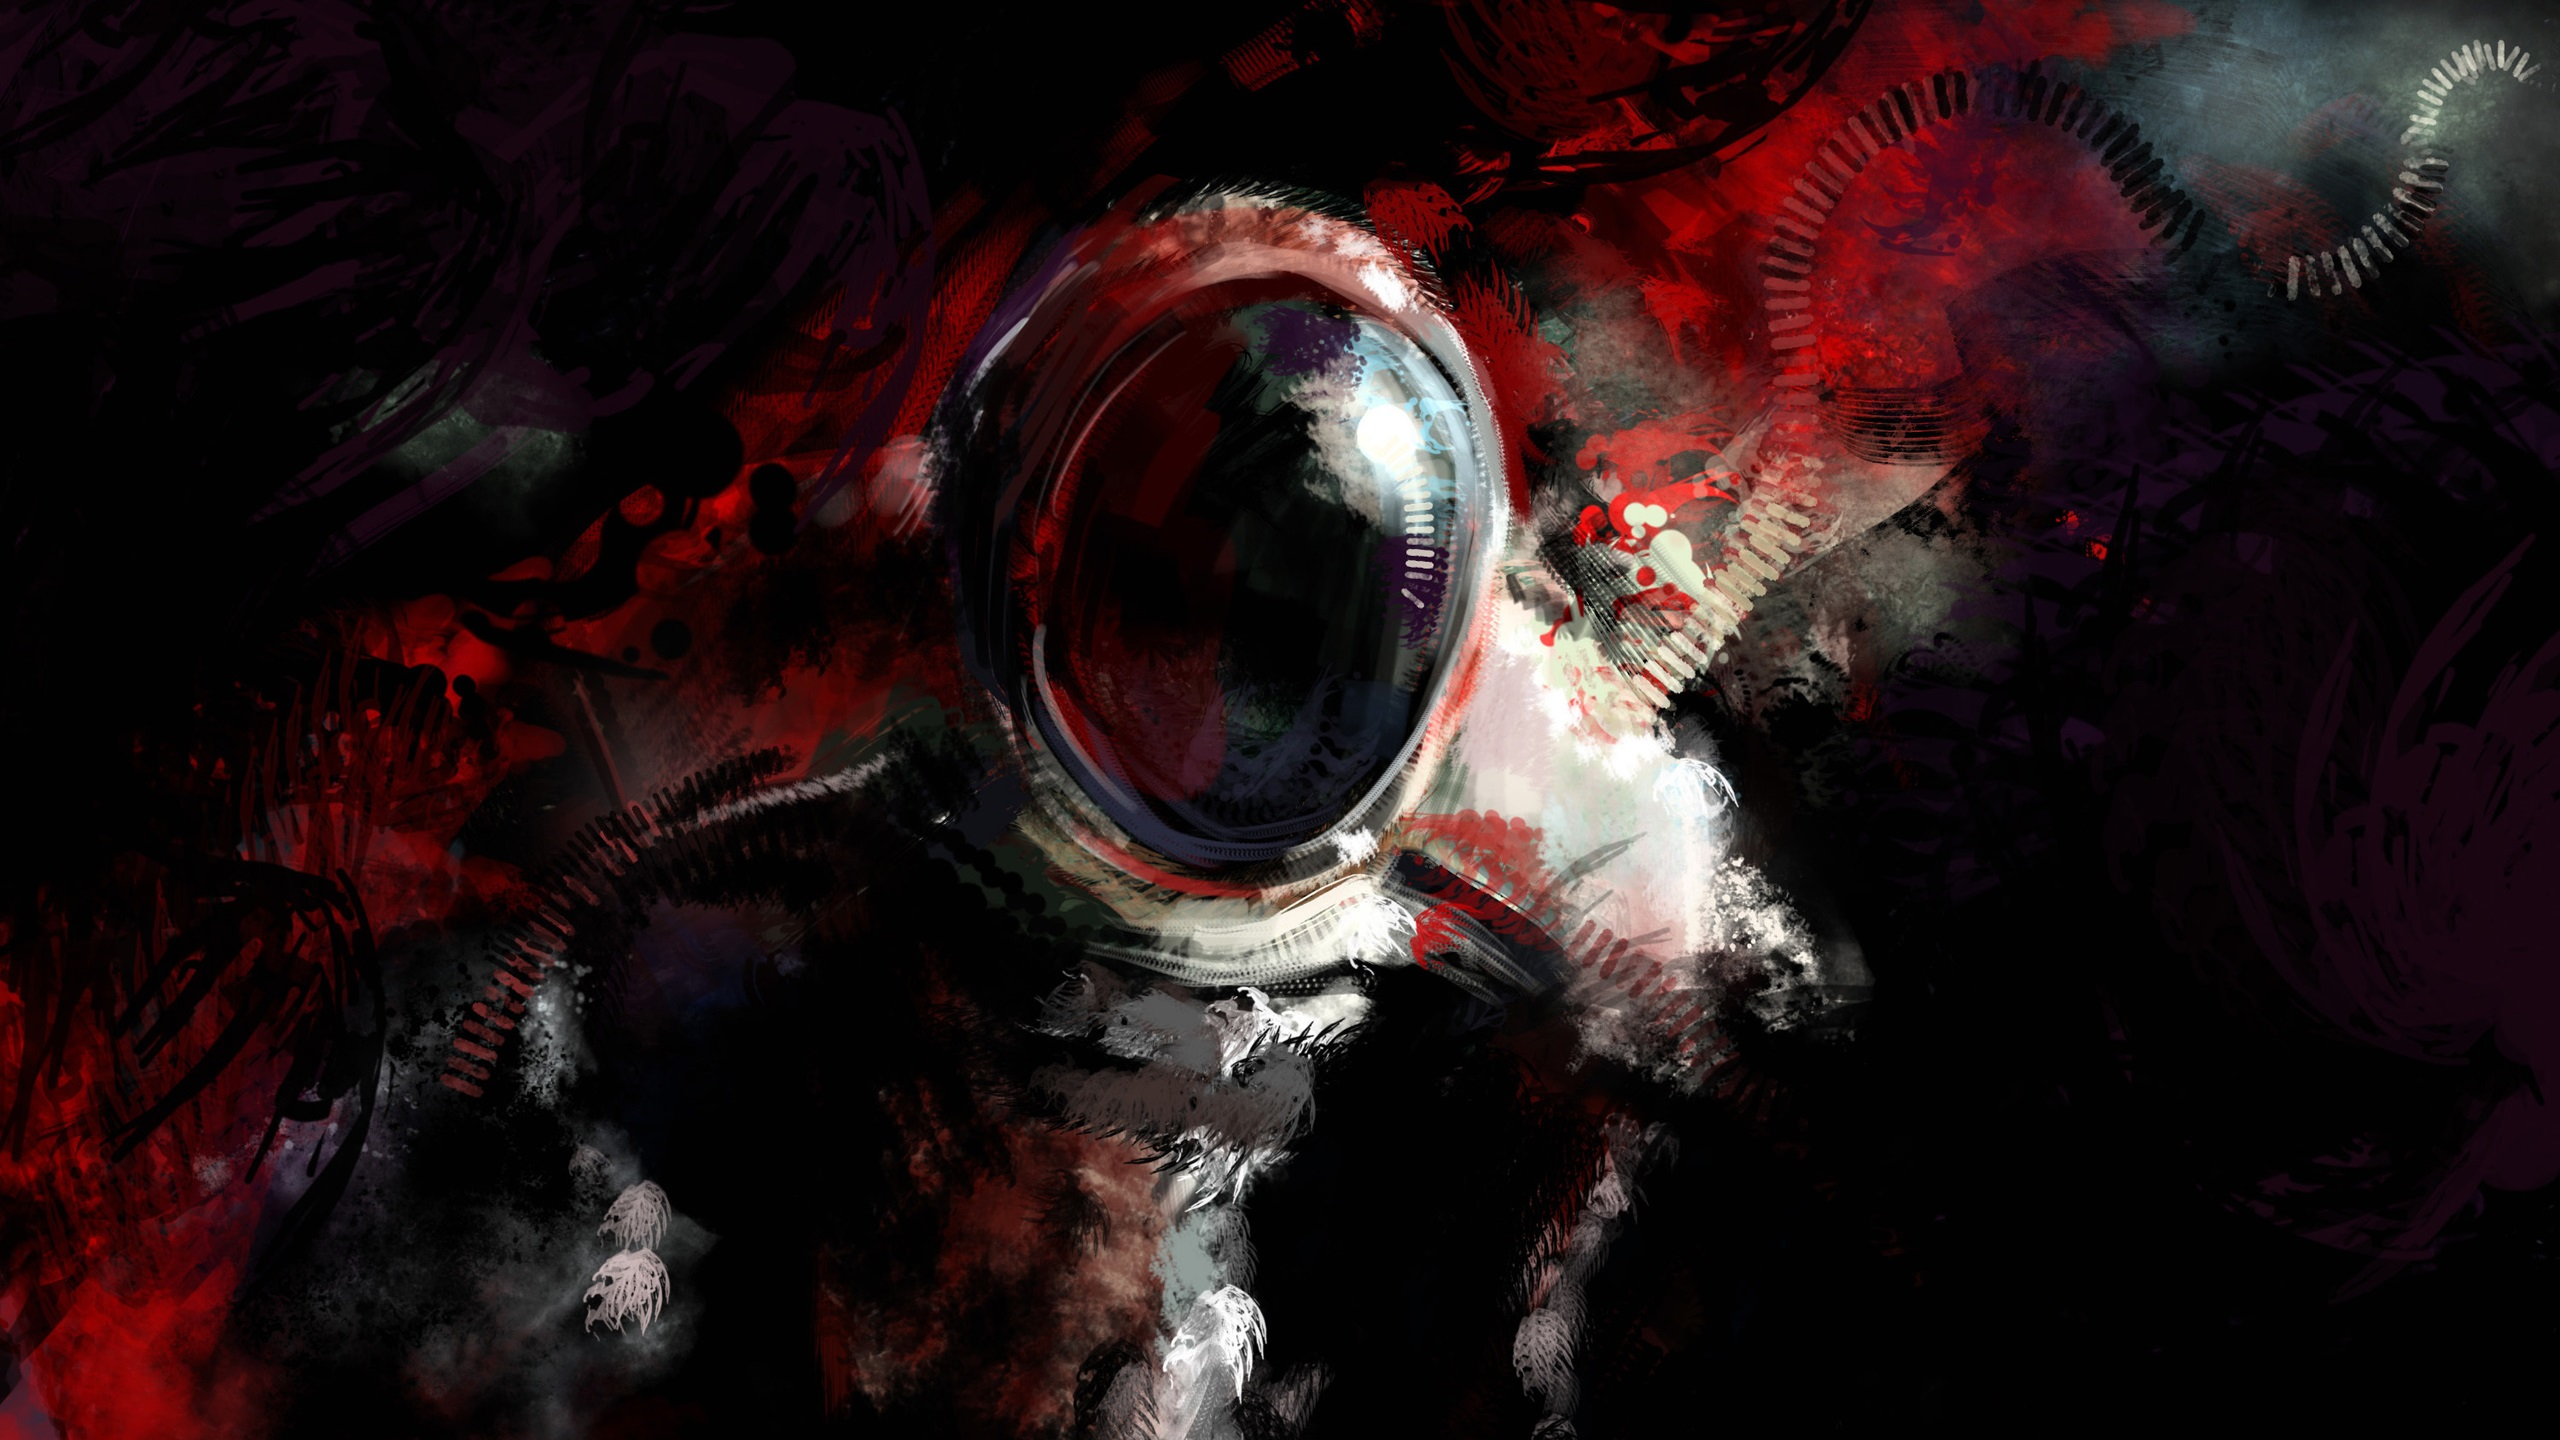 Iphone 5s Girl Wallpaper Wallpaper Astronaut Abstract Design 2560x1600 Hd Picture